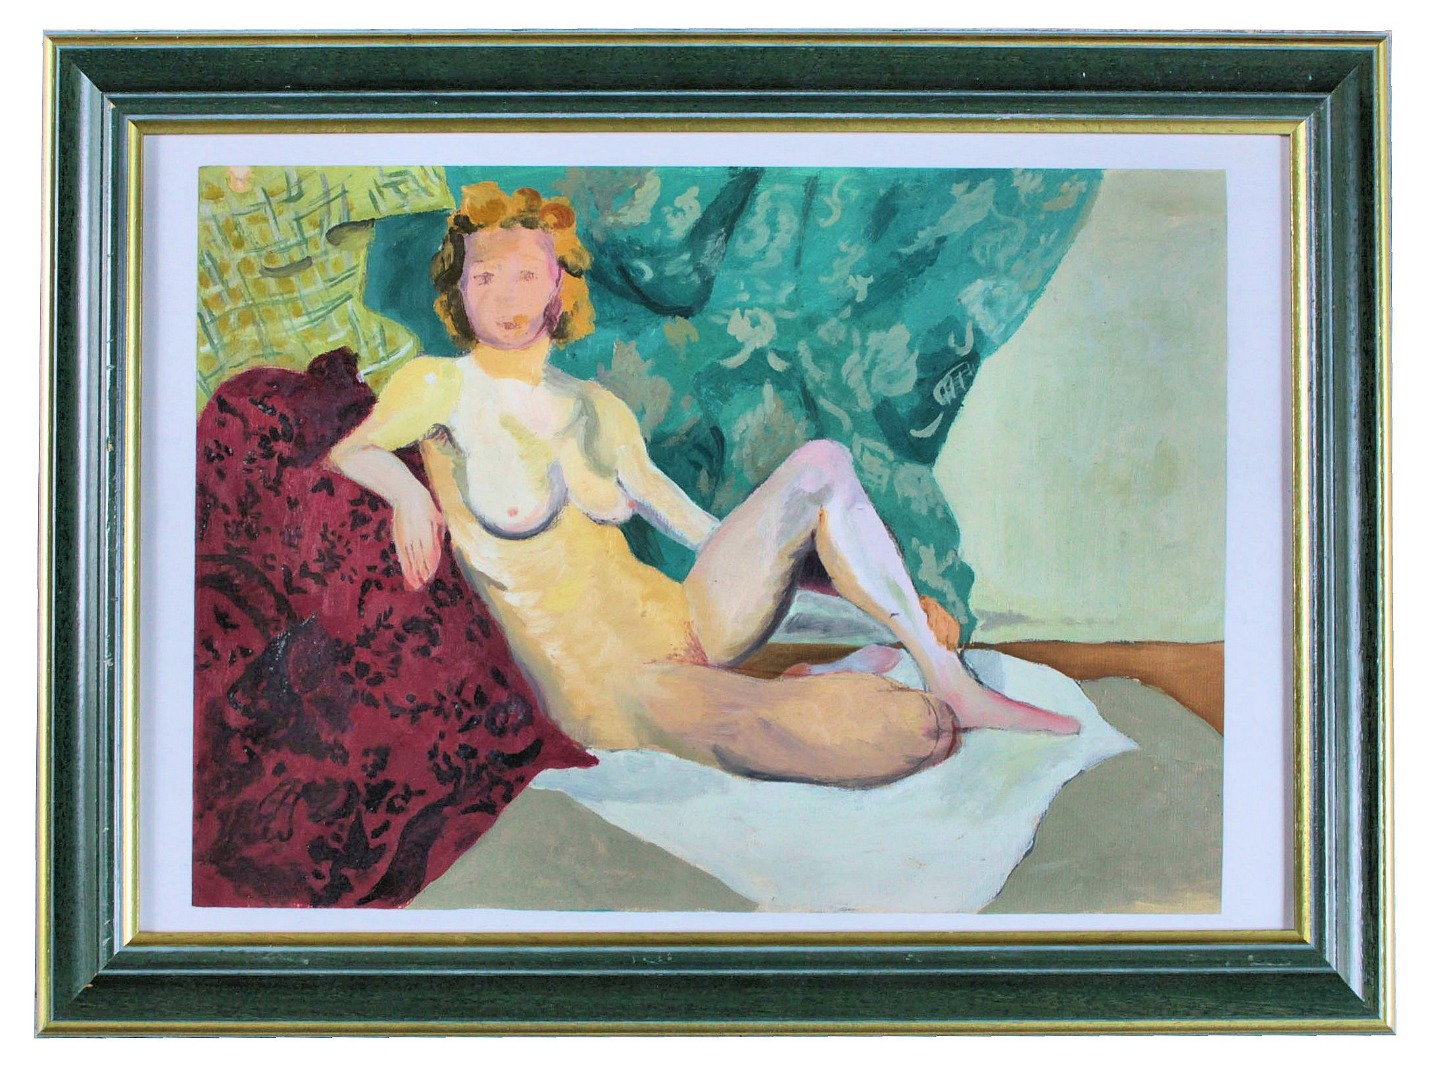 ART DECO PERIOD GOUACHE attributed to Jean Puy